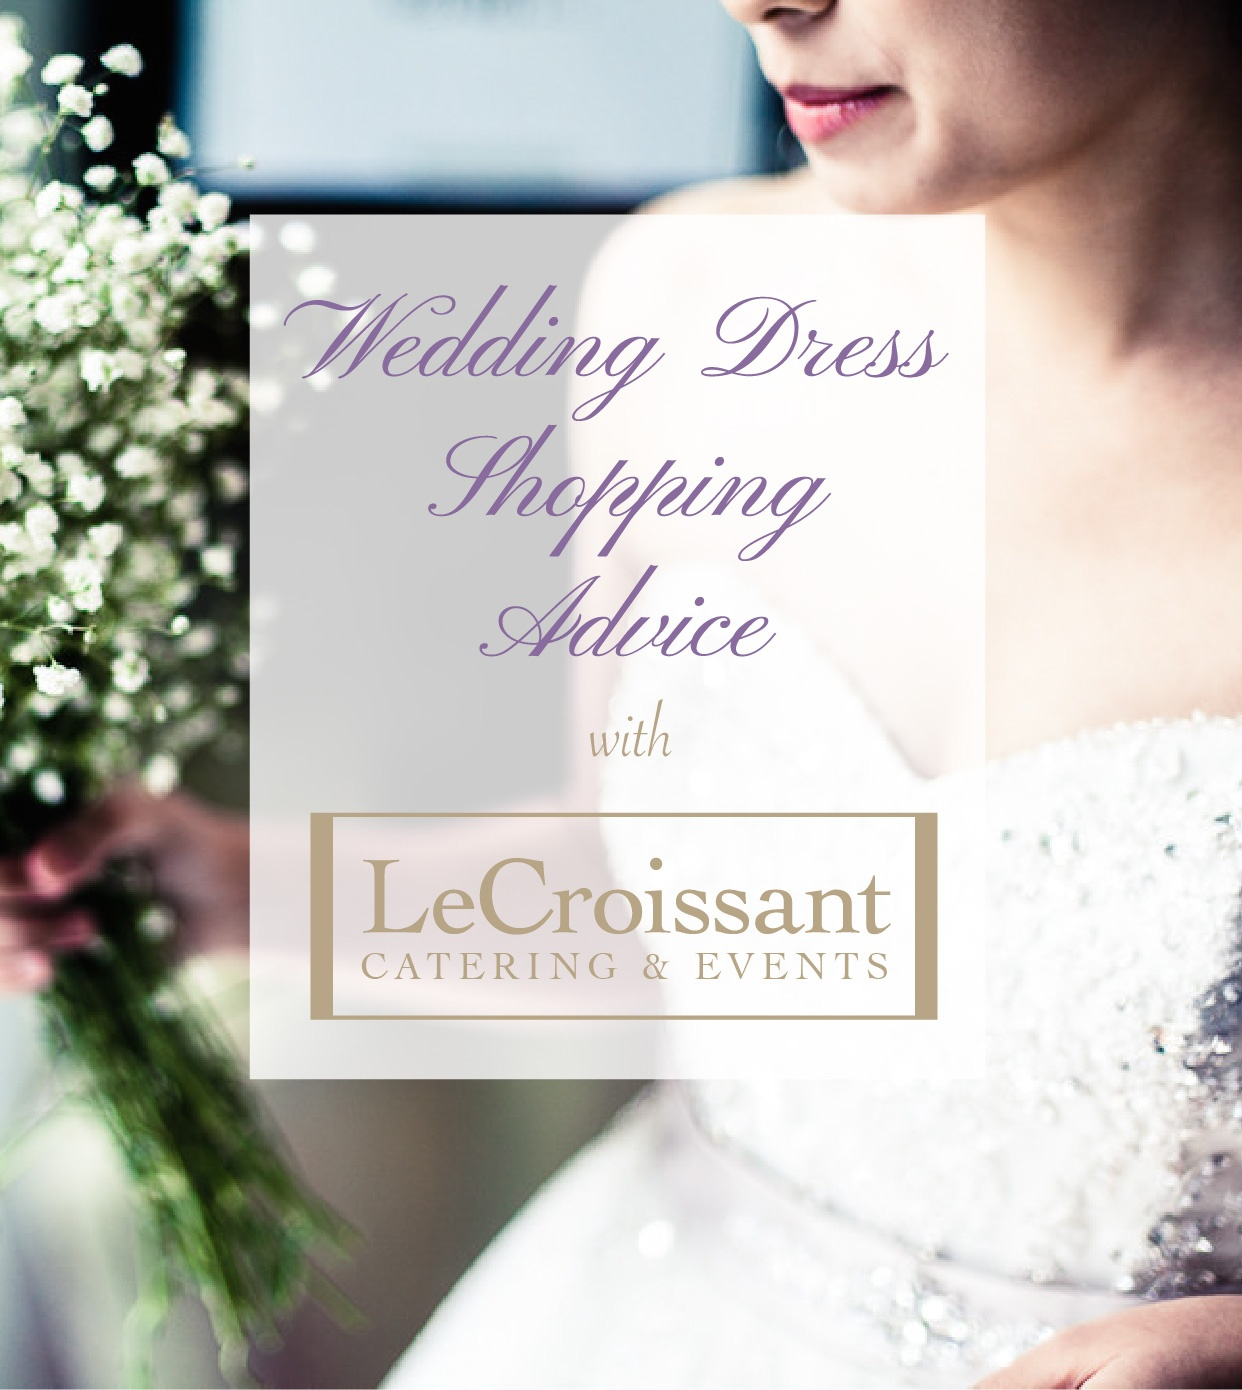 Wedding Dress Shopping advice for brides with Lux Catering and Events - Utah's premier wedding caterers and wedding planners wedding dress shopping advice Wedding Dress Shopping Advice weddingdress